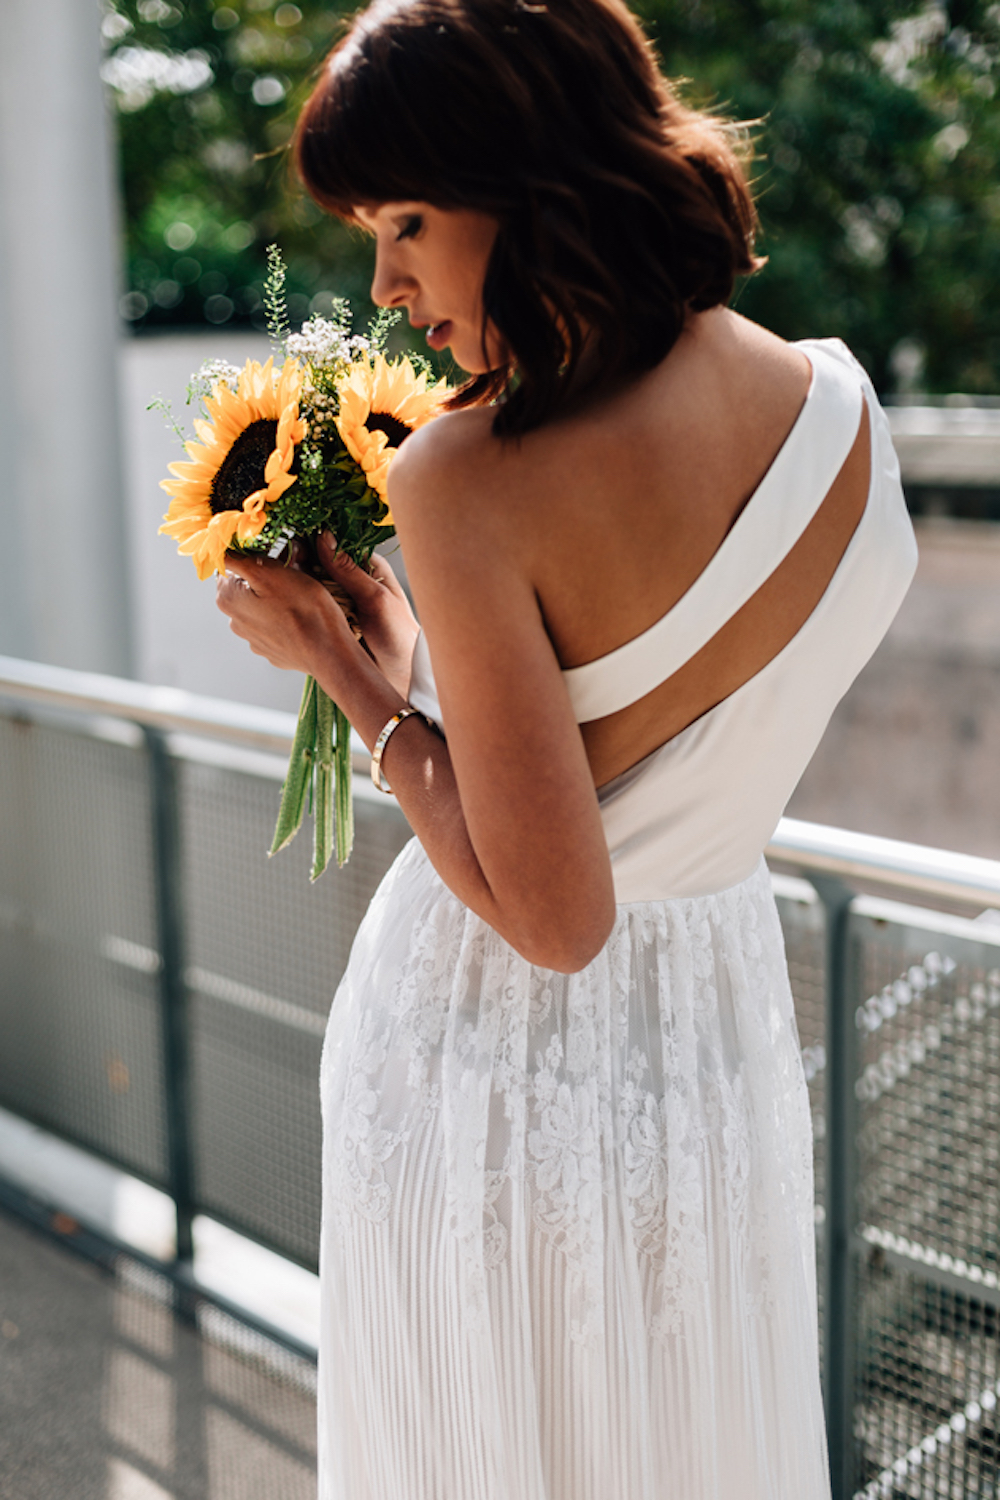 parisian-inspired-blog-mariagepierreatelier-photographe-mariage-paris-311.jpg